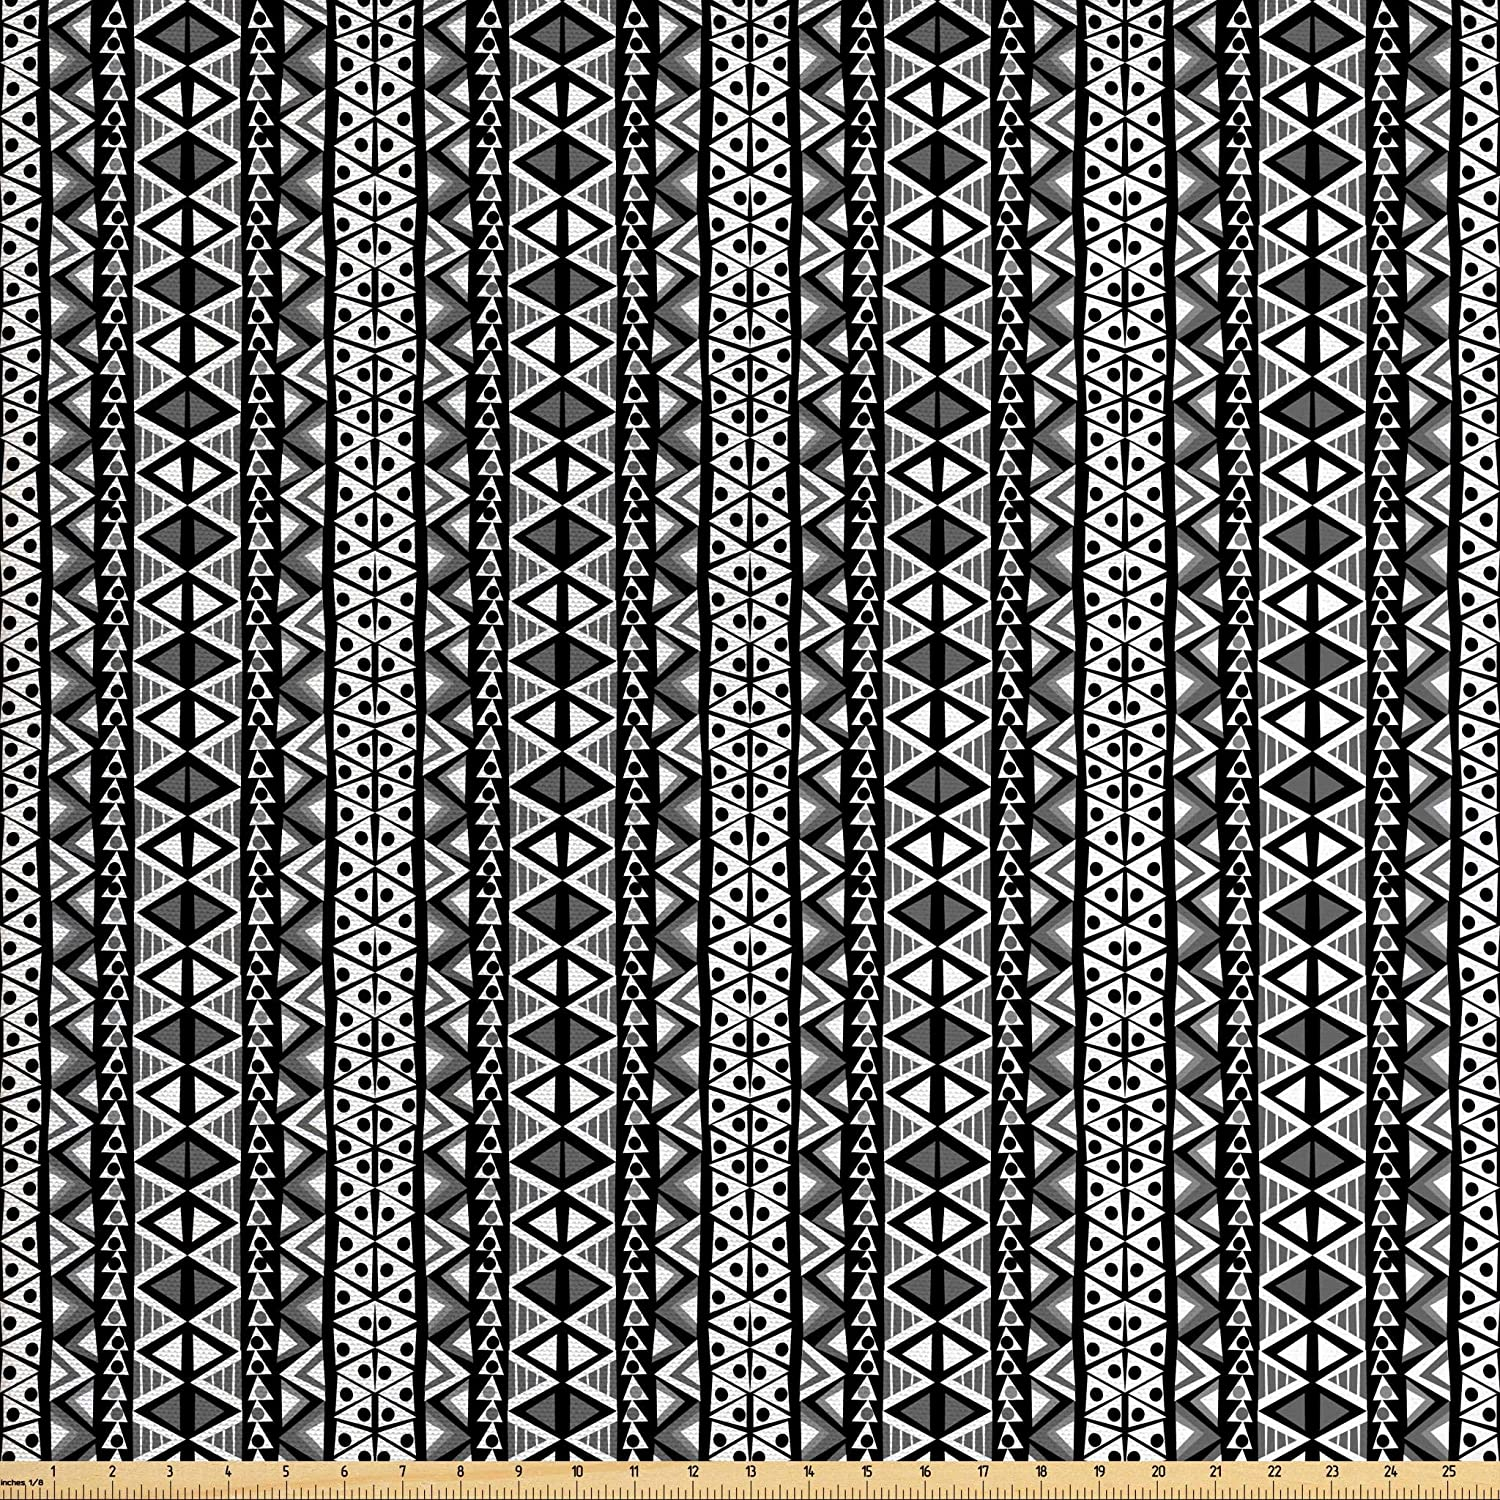 Ambesonne Retro Fabric by The Yard, Boho Pattern in Black and White with Western Native Effects Folk Design, Decorative Fabric for Upholstery and Home Accents, 2 Yards, Black Grey